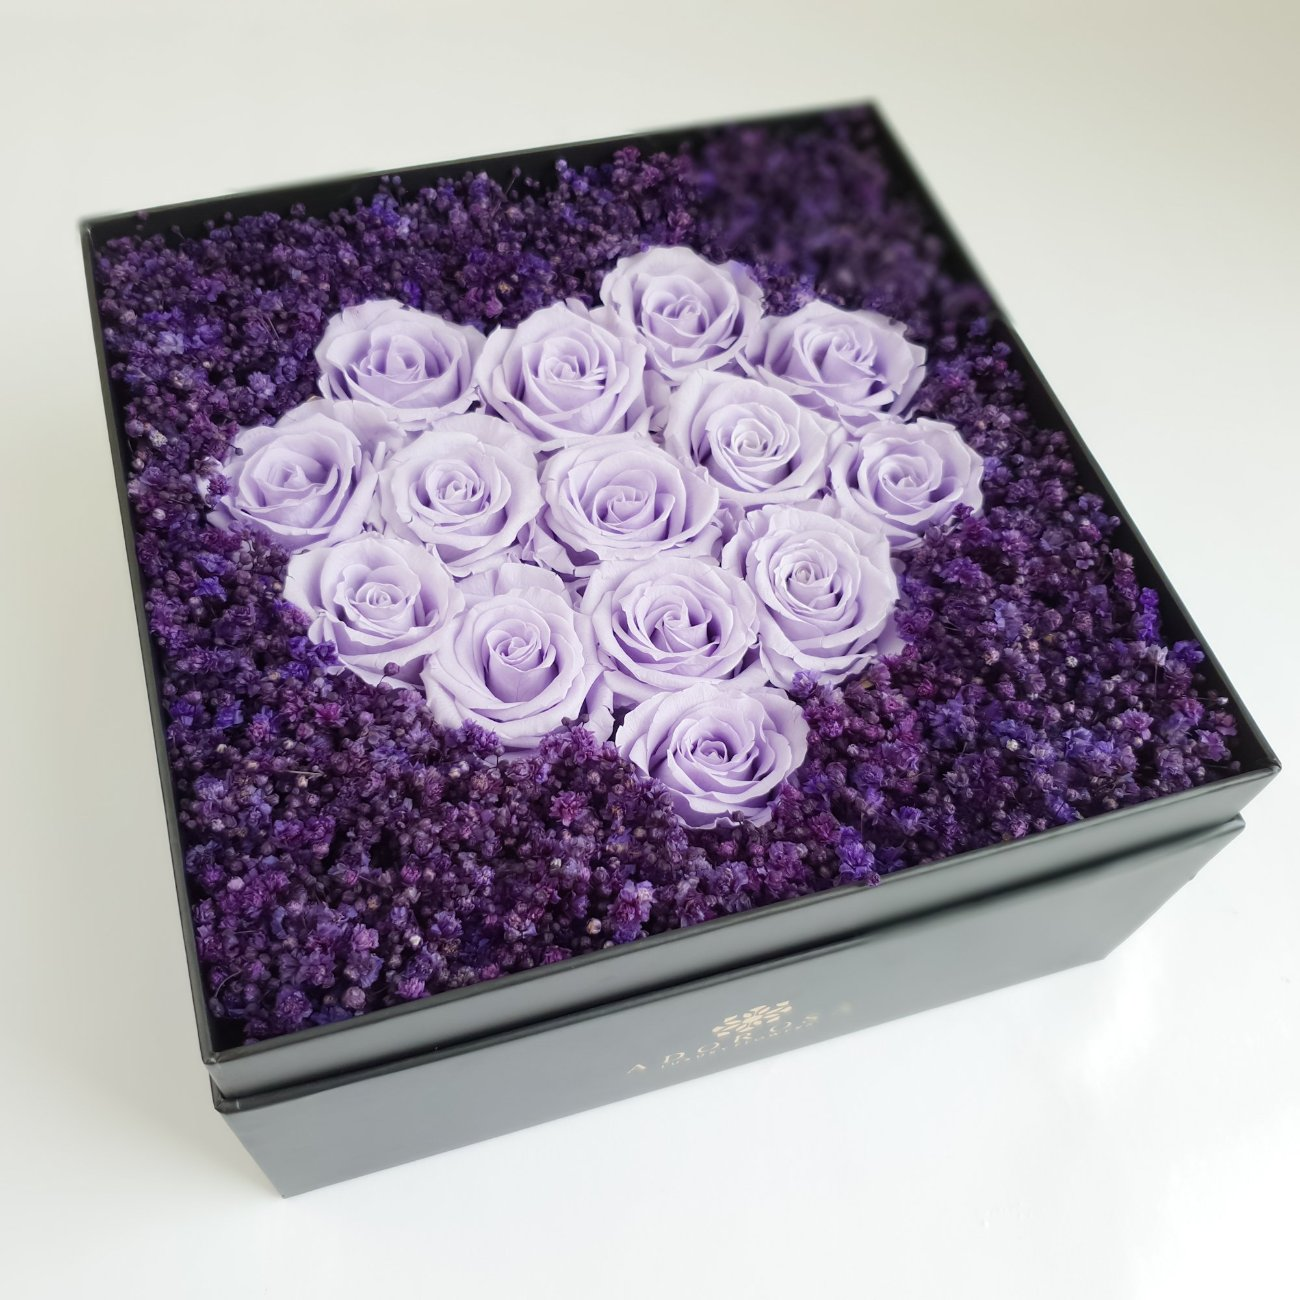 purple rose, preserved roses, preserved flowers, rose box sydney, heart box, flower box sydney, long lasting roses sydney